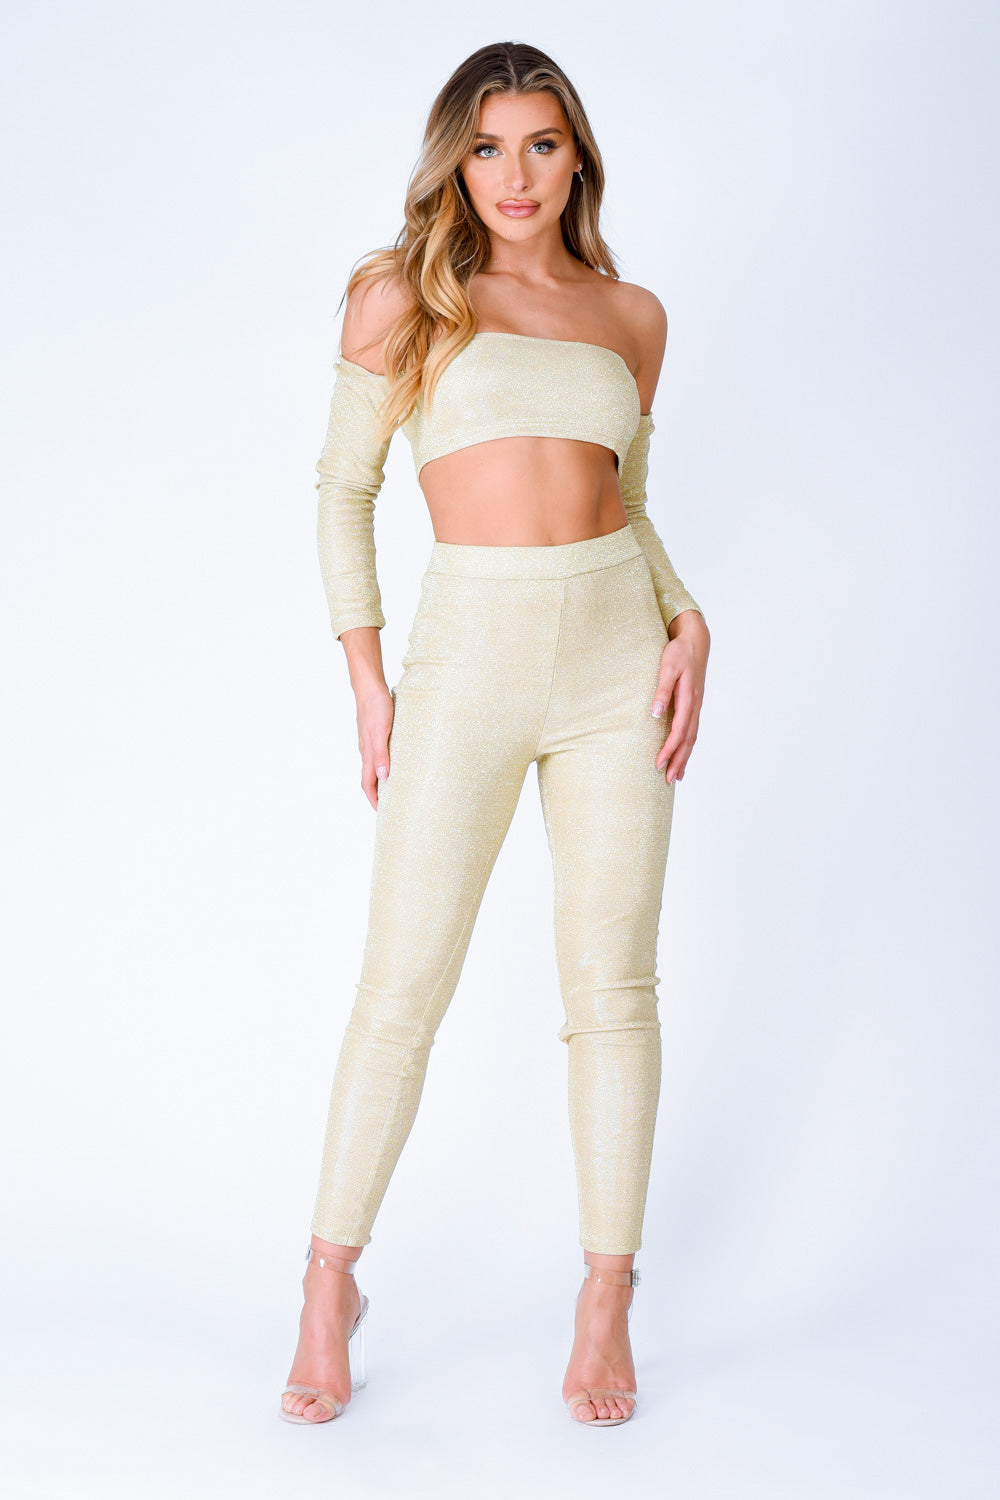 Havana Gold Metallic Glitter Two Piece Leggings Co-ord Set